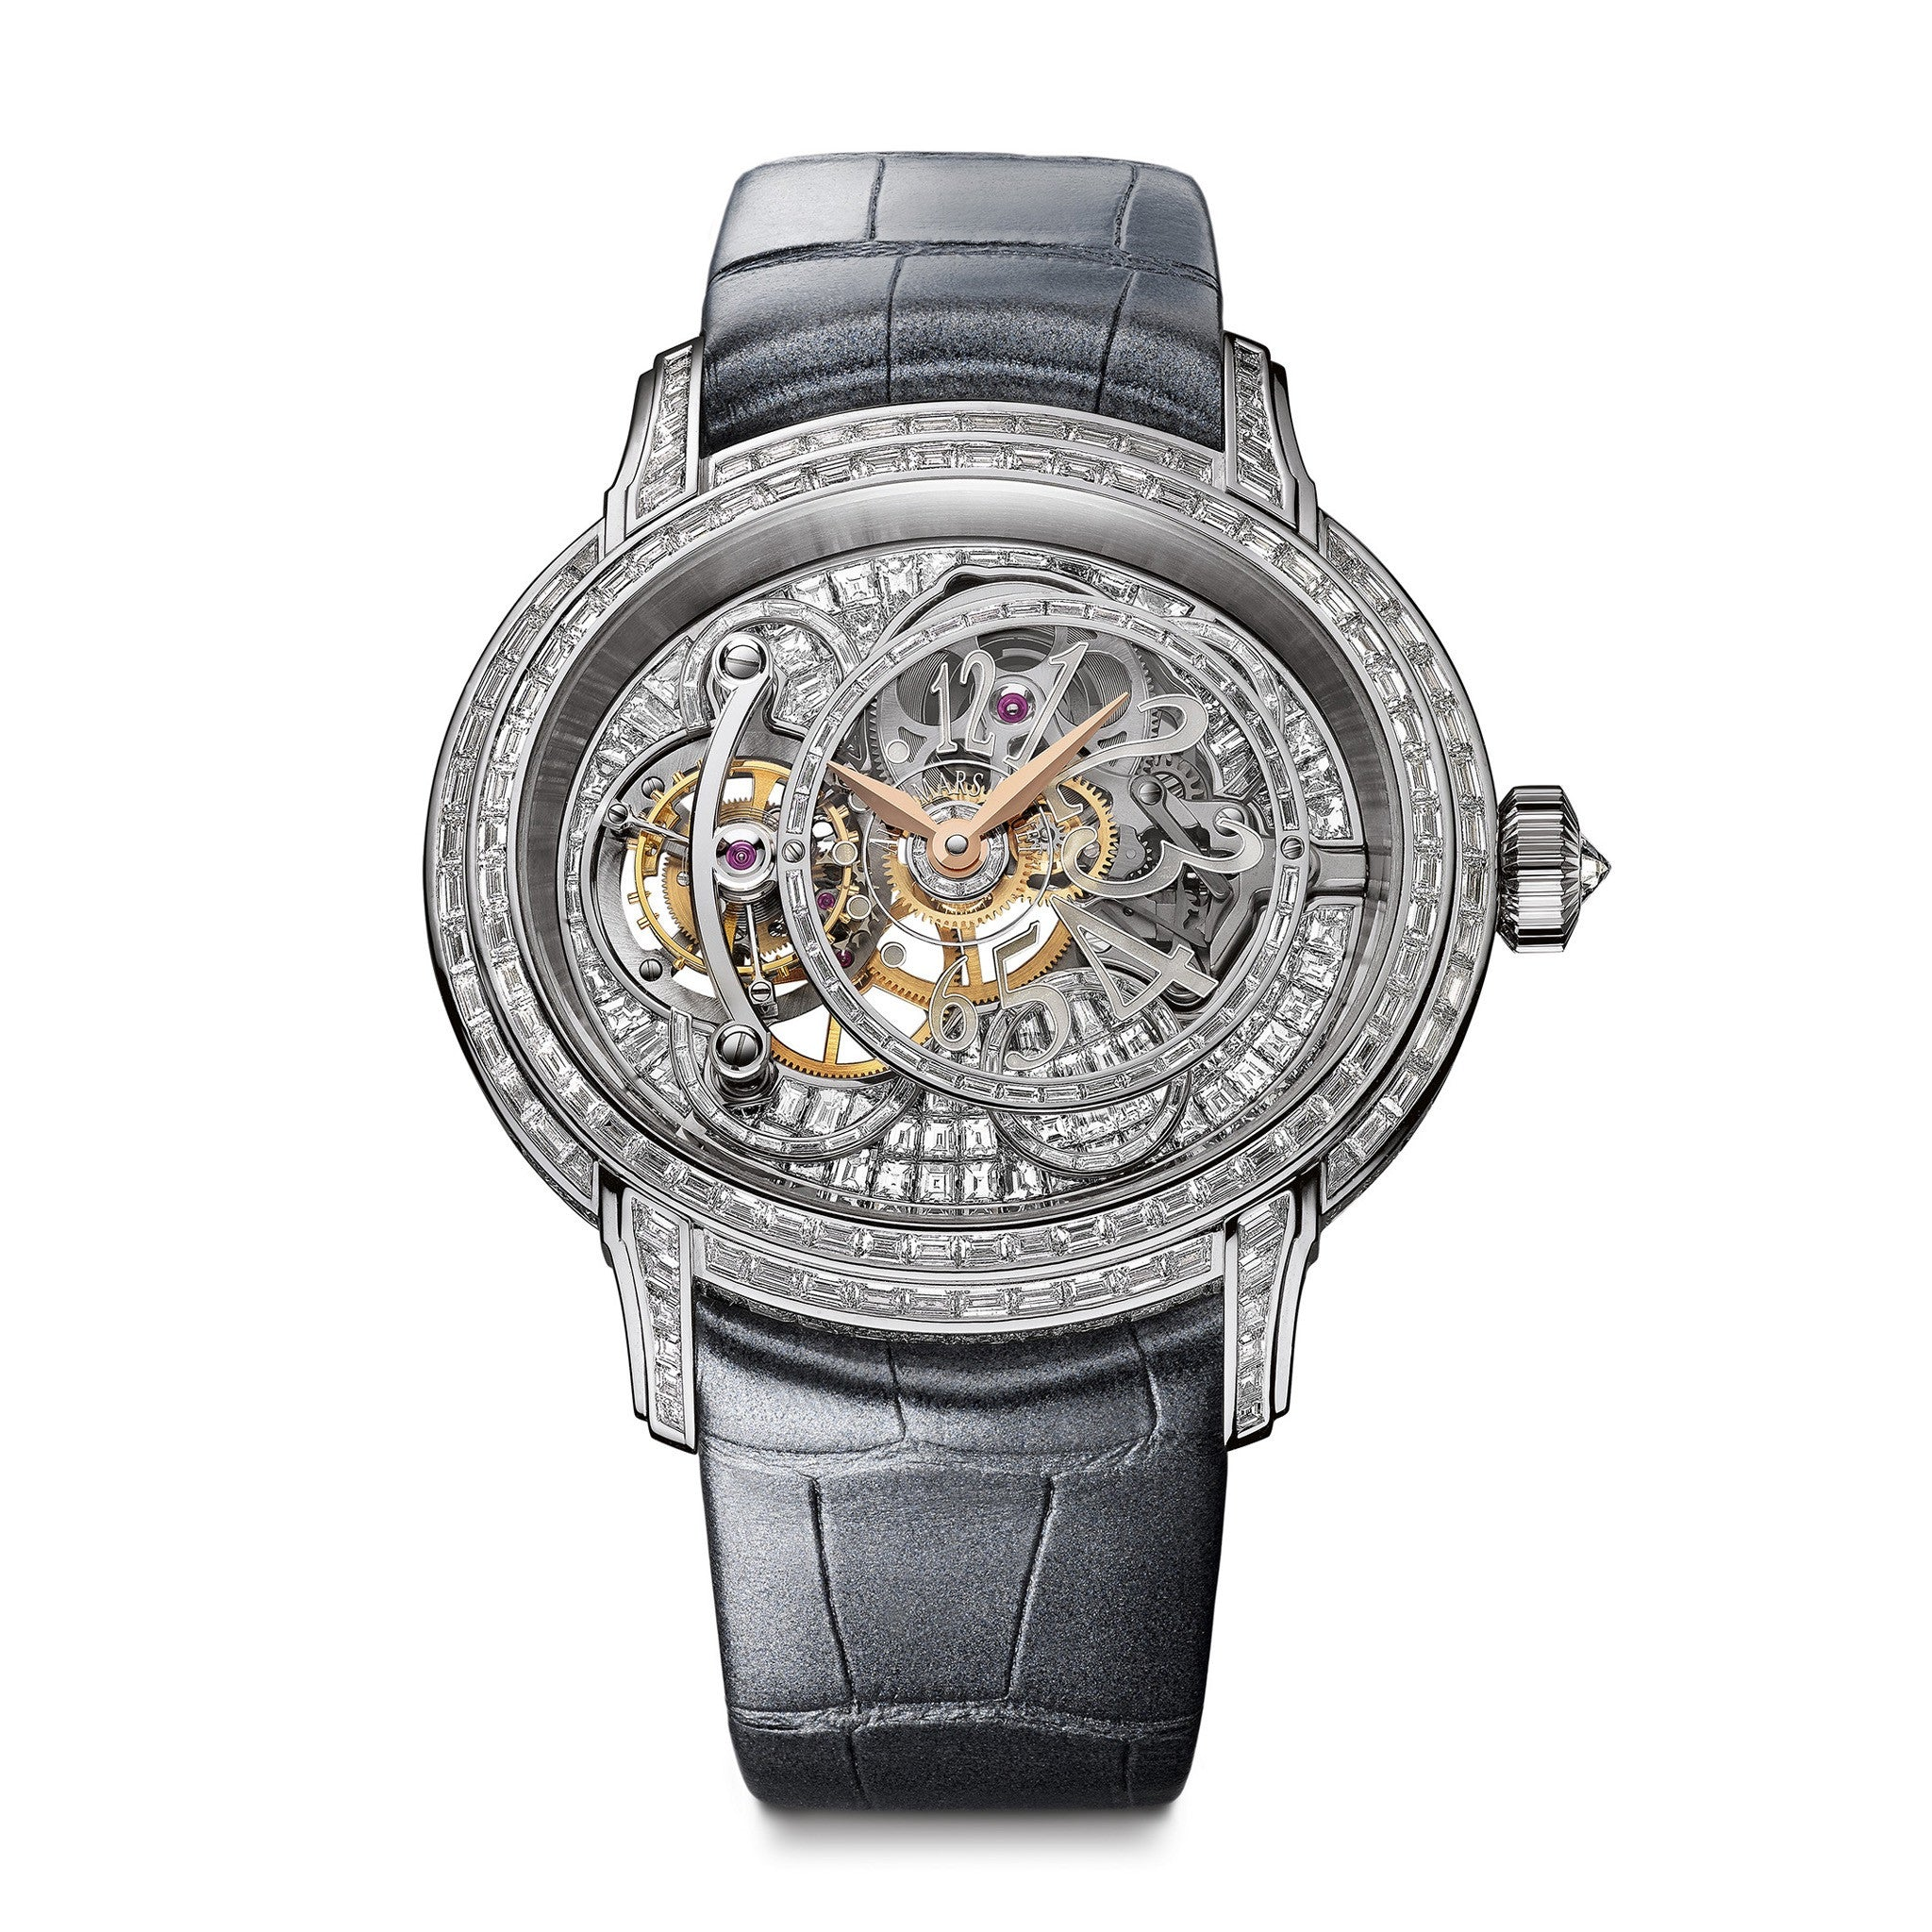 Millenary Tourbillon 26381BC.ZZ.D113CR.01 - Audemars Piguet